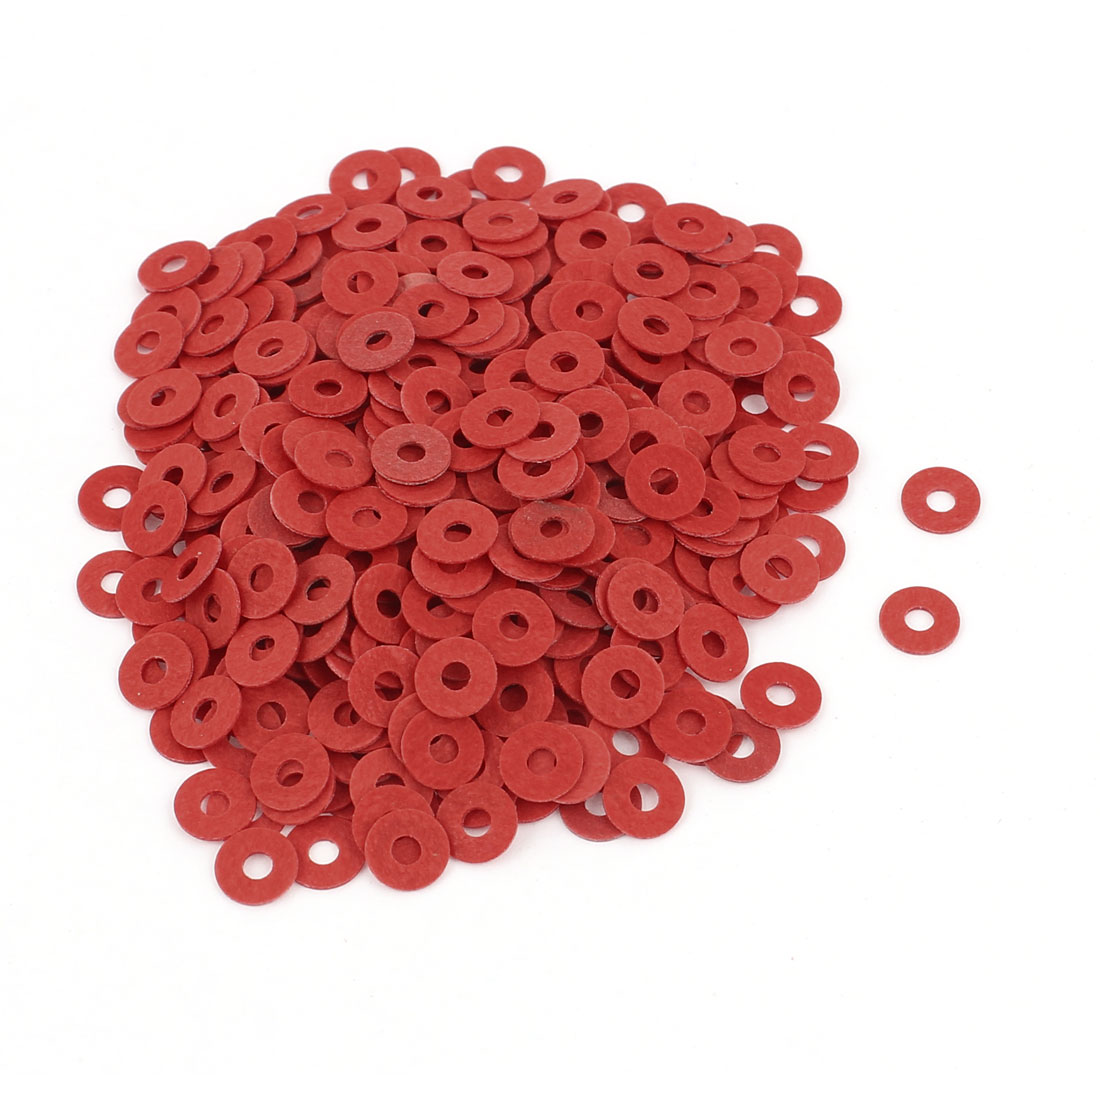 Fiber Flat Insulating Washer Ring 2mmx6mmx0.5mm 500Pcs Red for Screws